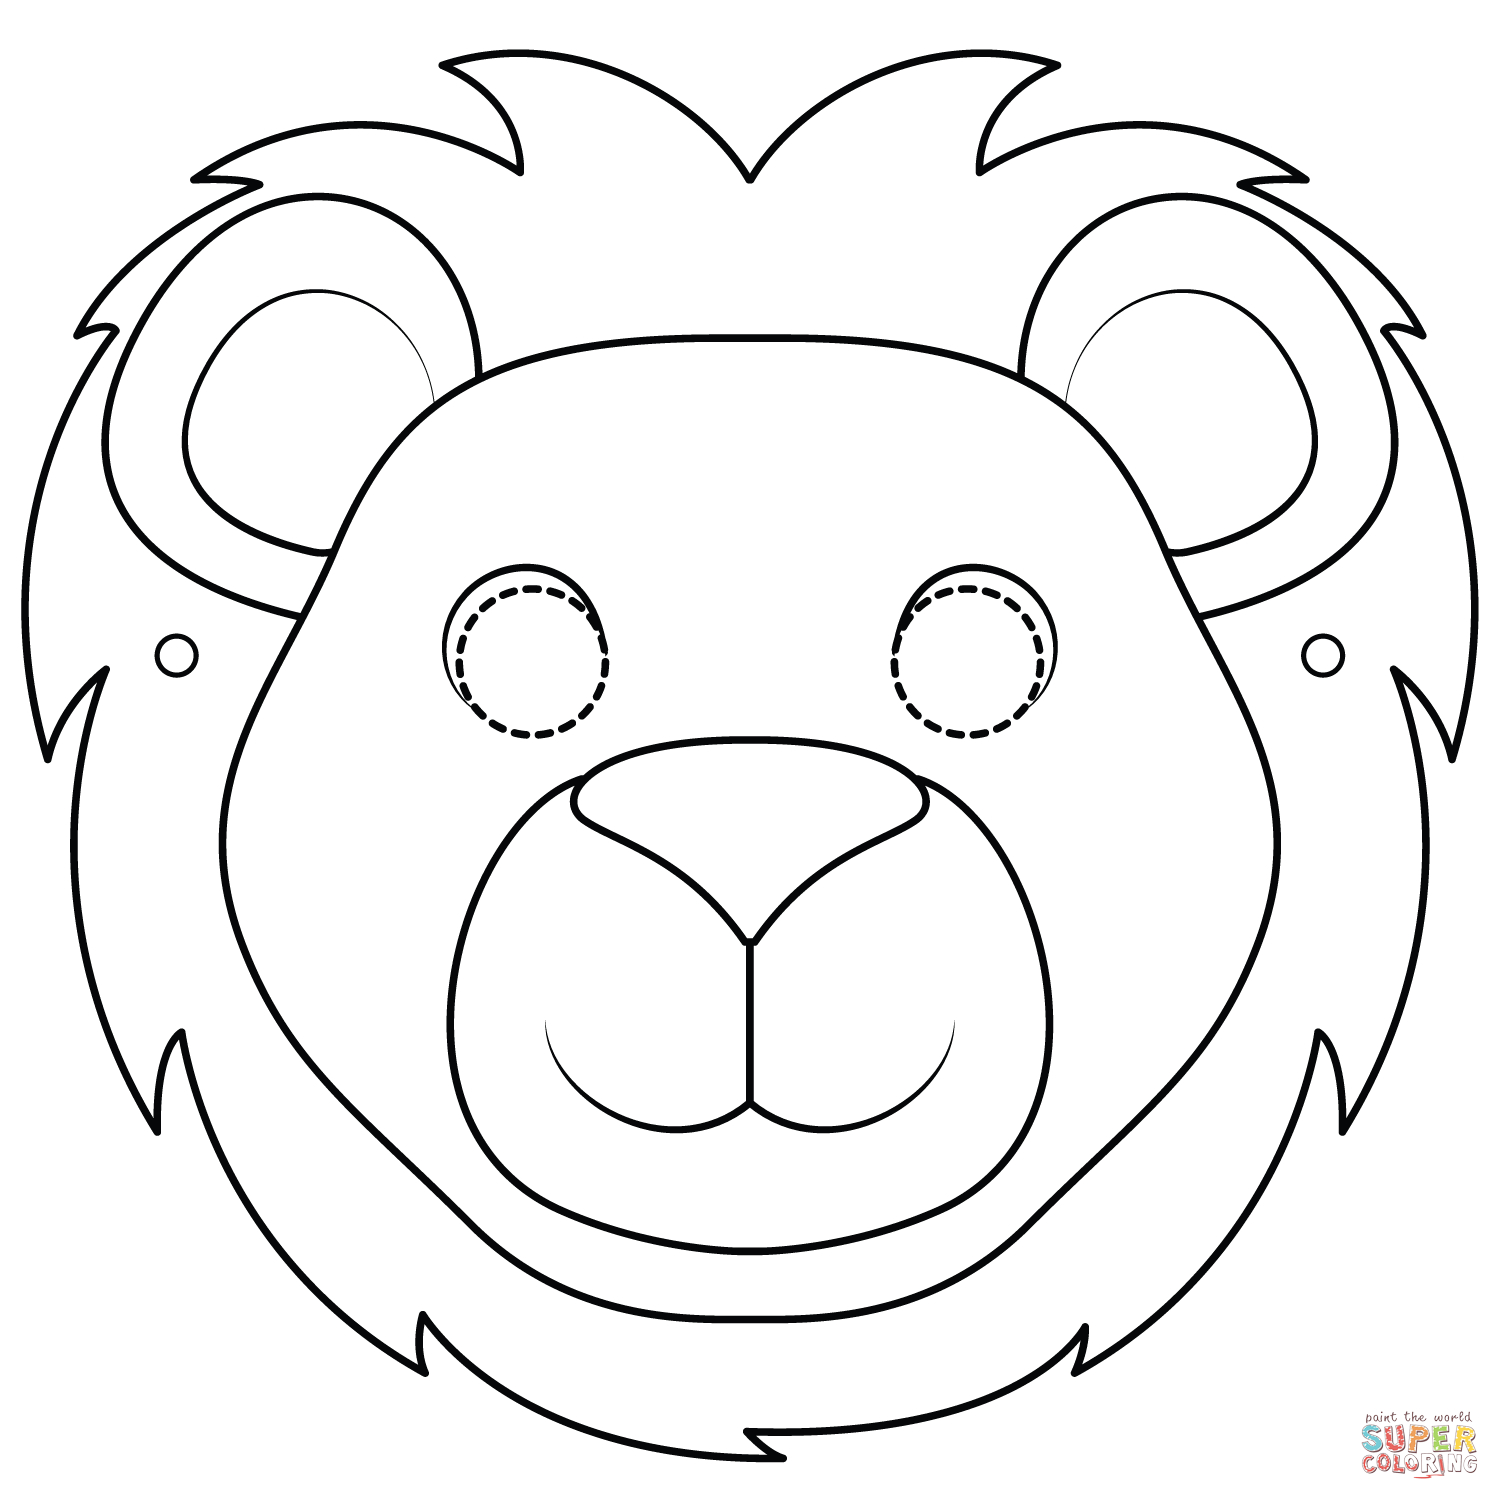 Lion Mask Coloring Page   Free Printable Coloring Pages - Free Printable Lion Mask